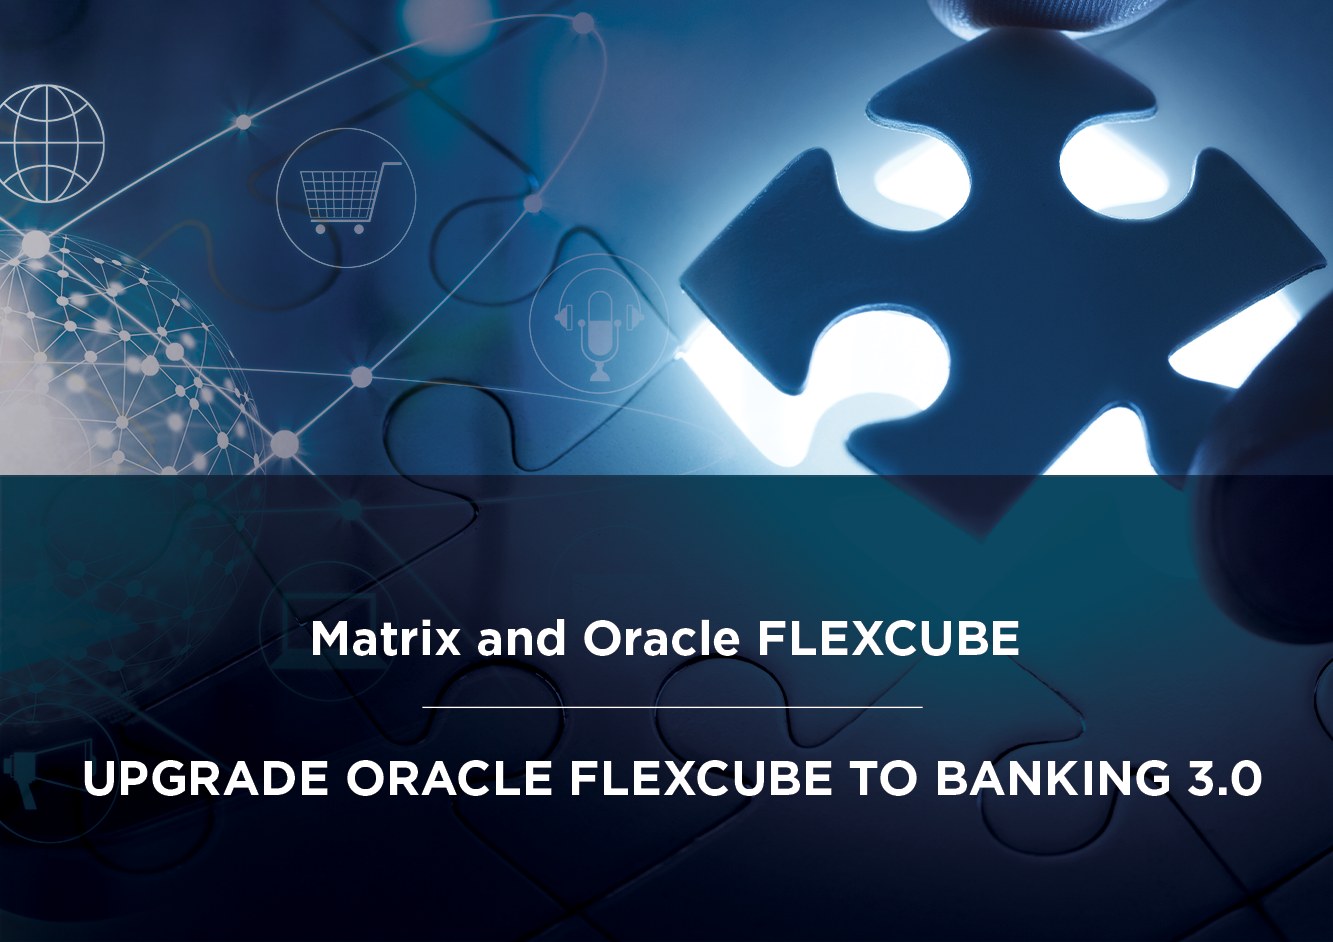 Upgrade Oracle Flexcube with Matrix